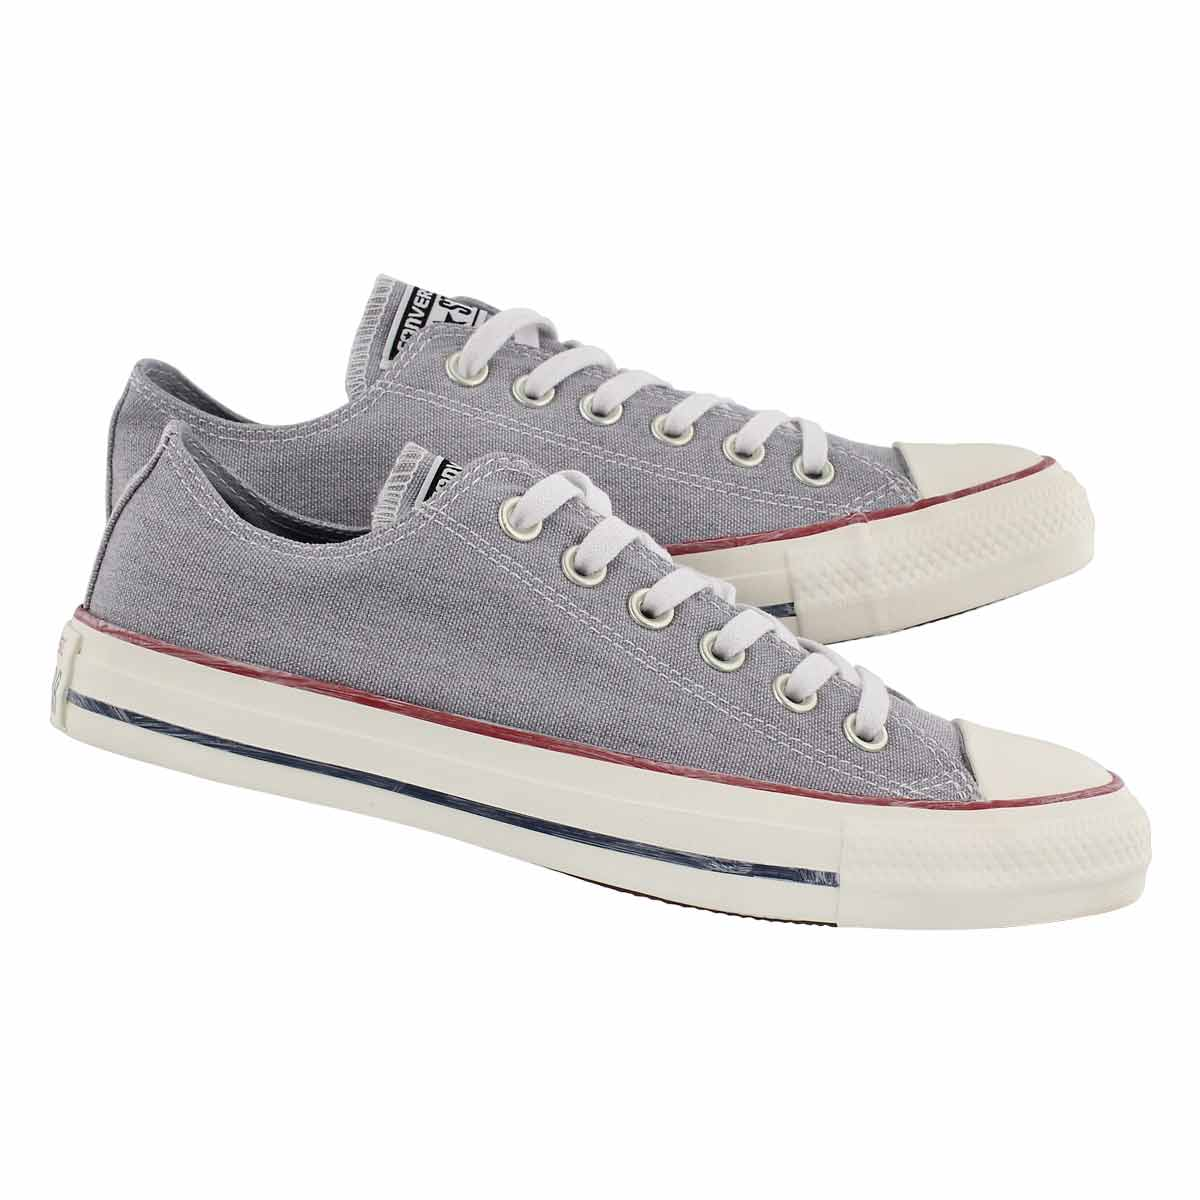 Lds CTAS Stone Wash grey oxford sneaker